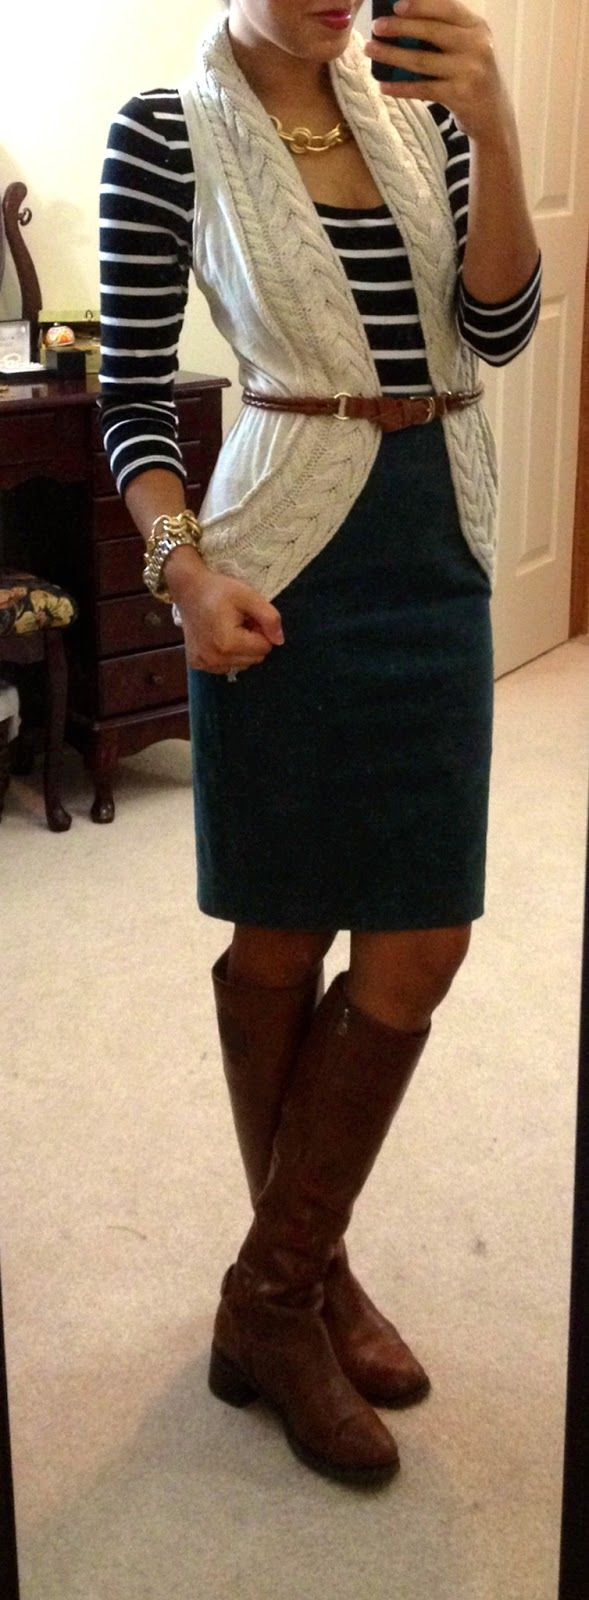 Belted sweater vest + pencil skirt - JCrew corduroy pencil skirt worn over F21 striped dress, Banana Republic sweater vest, Etienne Aigner costa boots, H belt, modified Style by Tori Spelling necklace. #boots